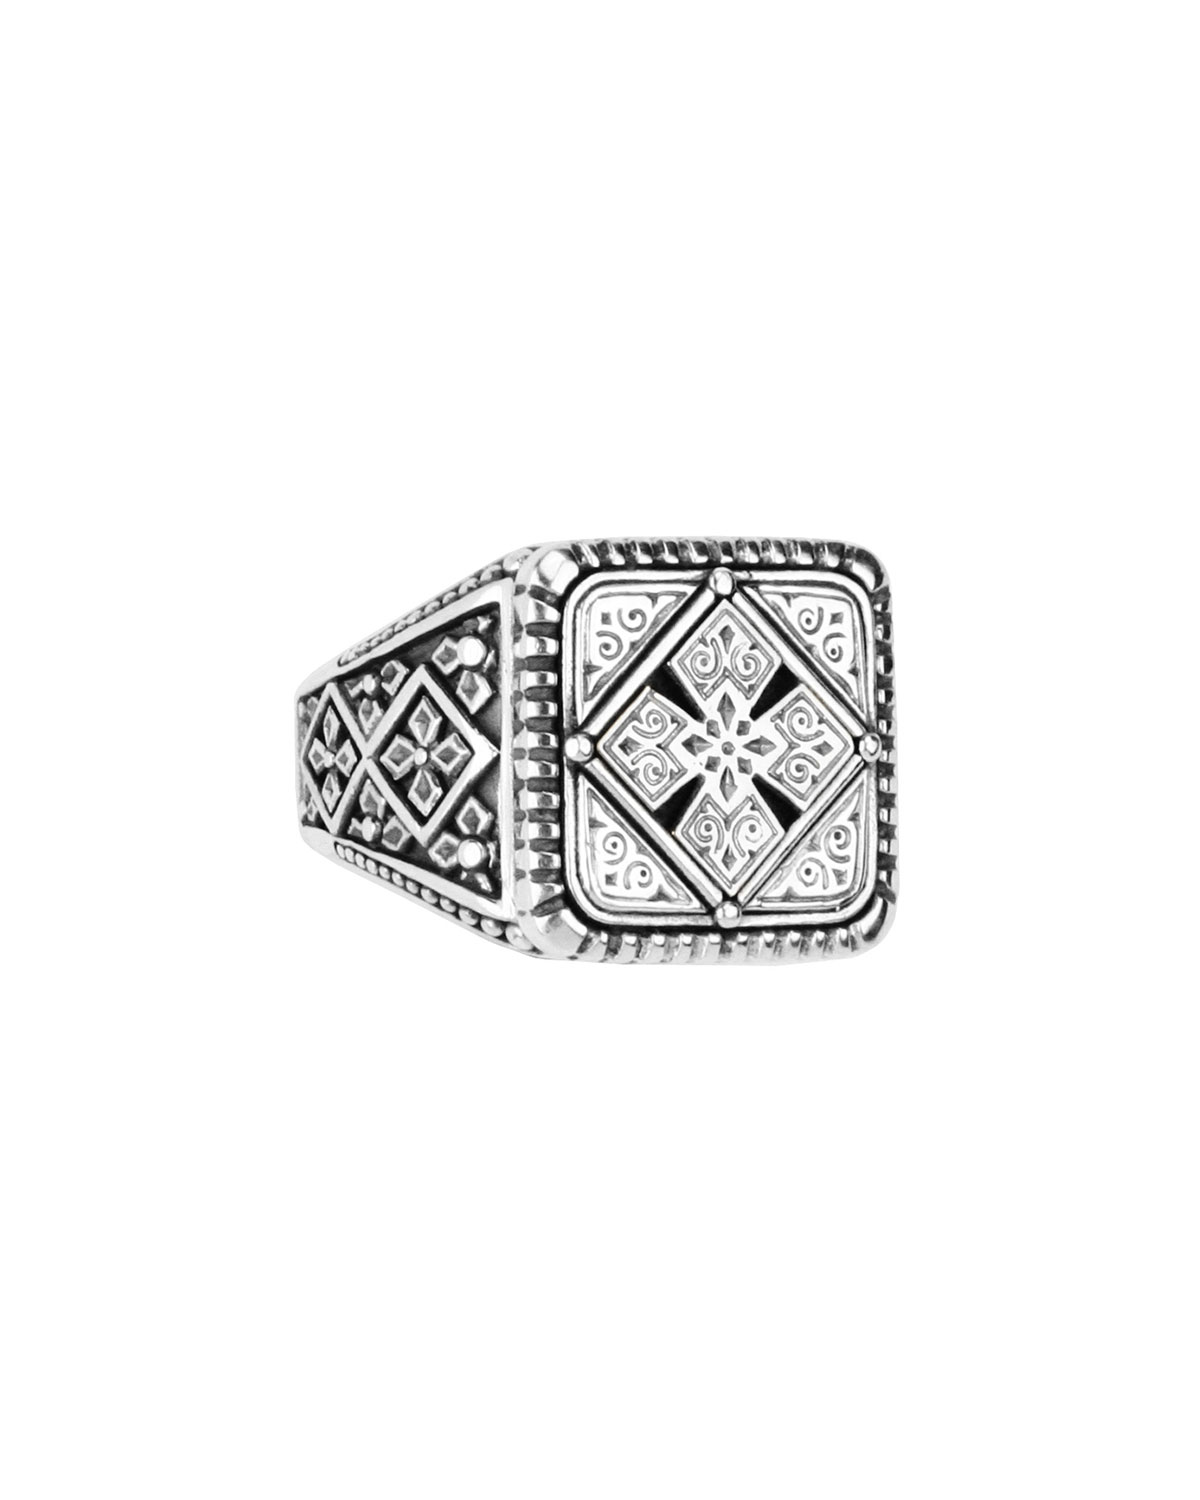 Men's Sterling Silver Classics Signet Ring